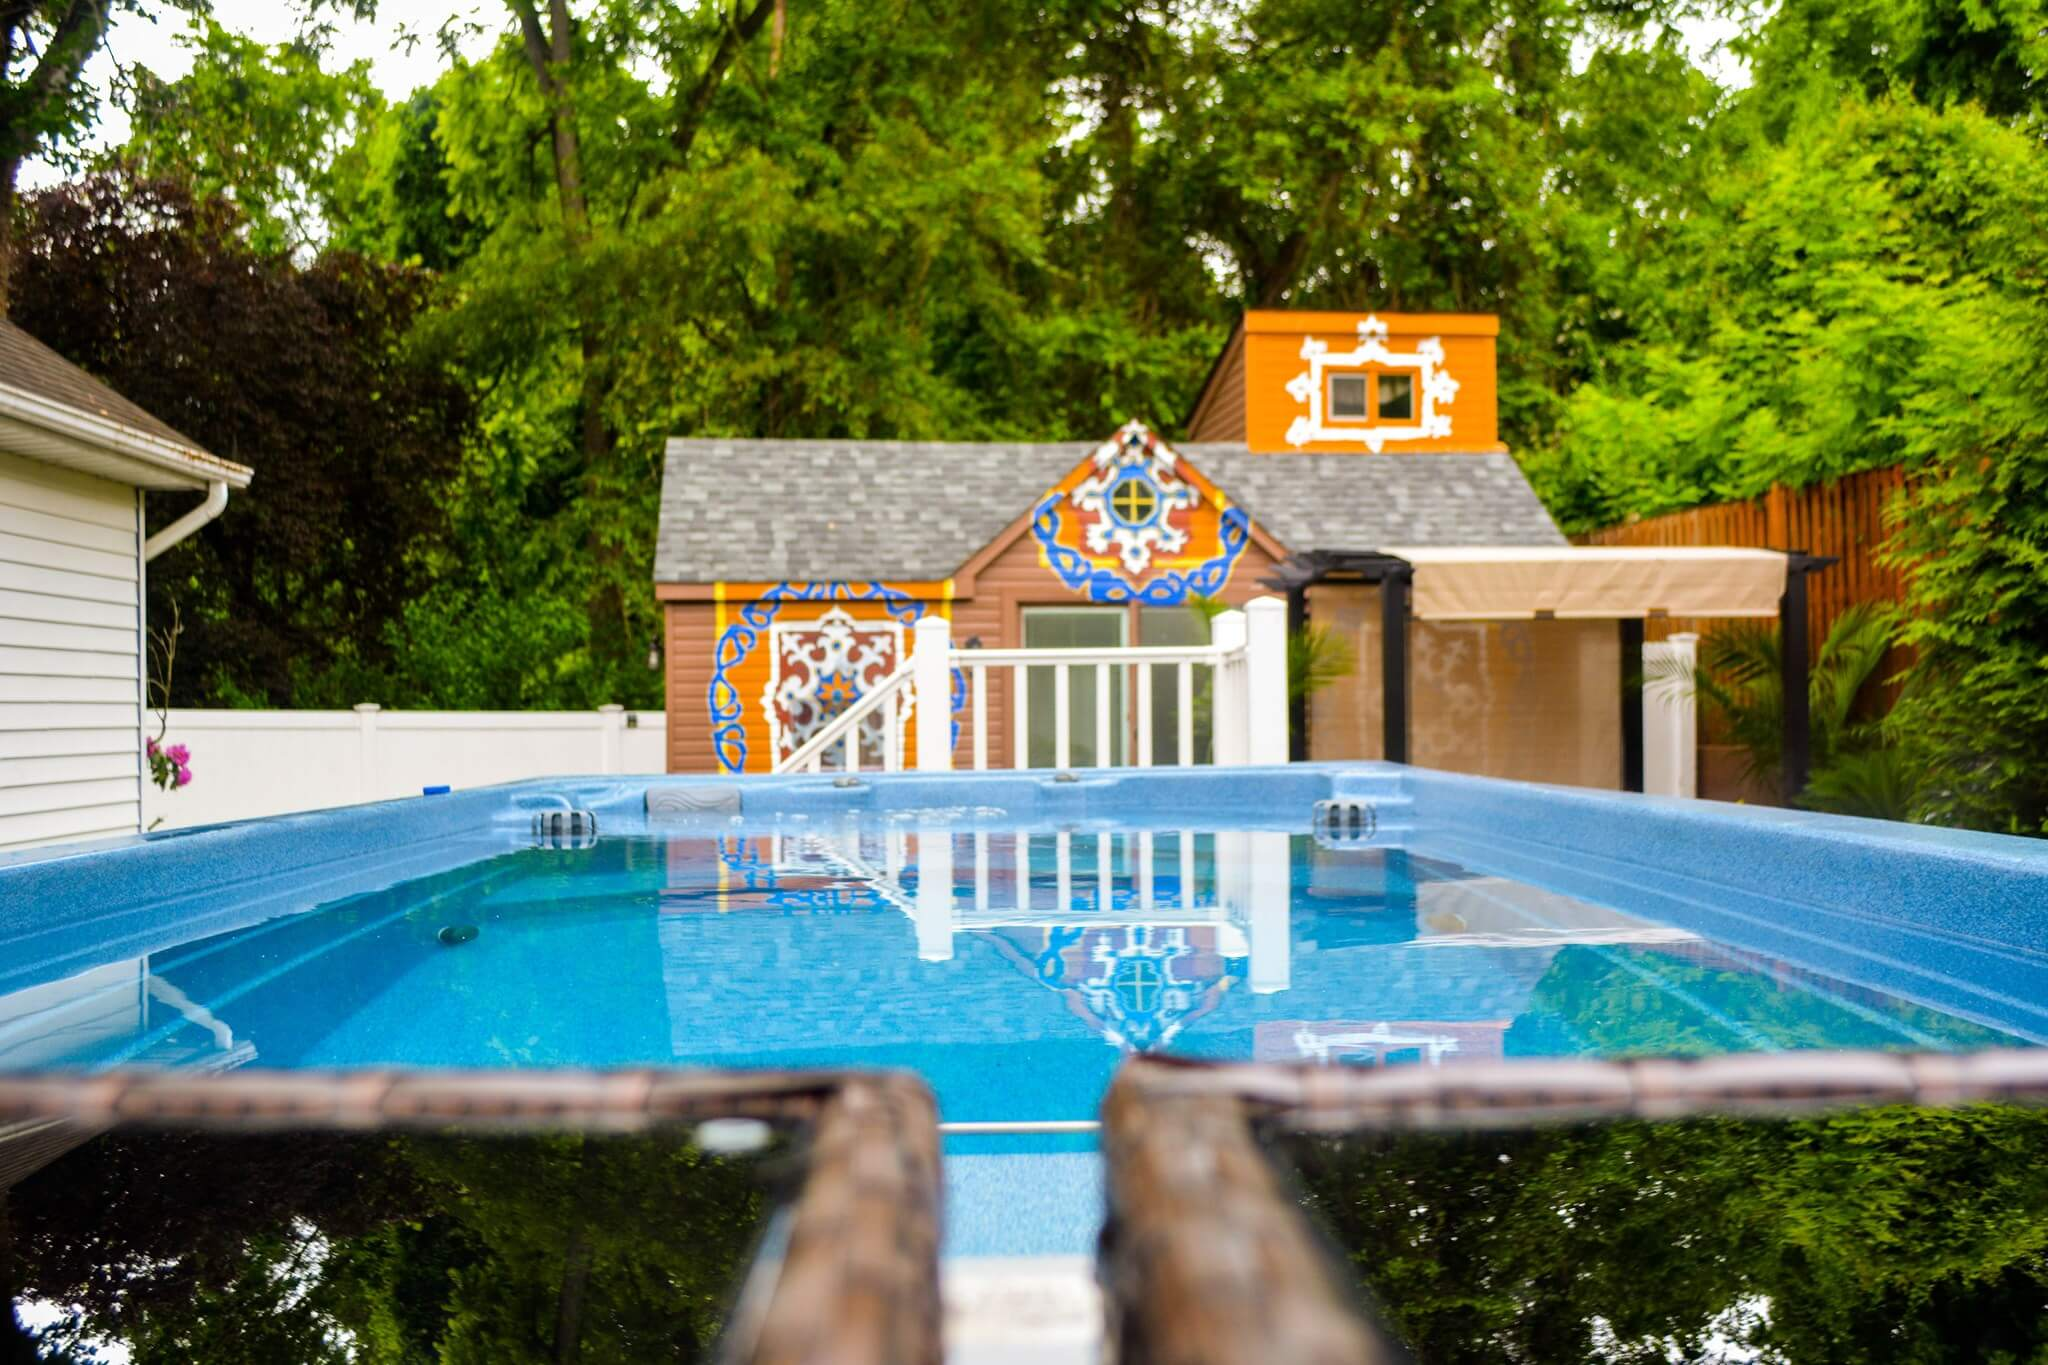 The Endless Pools swim spa at the Nelson Manor